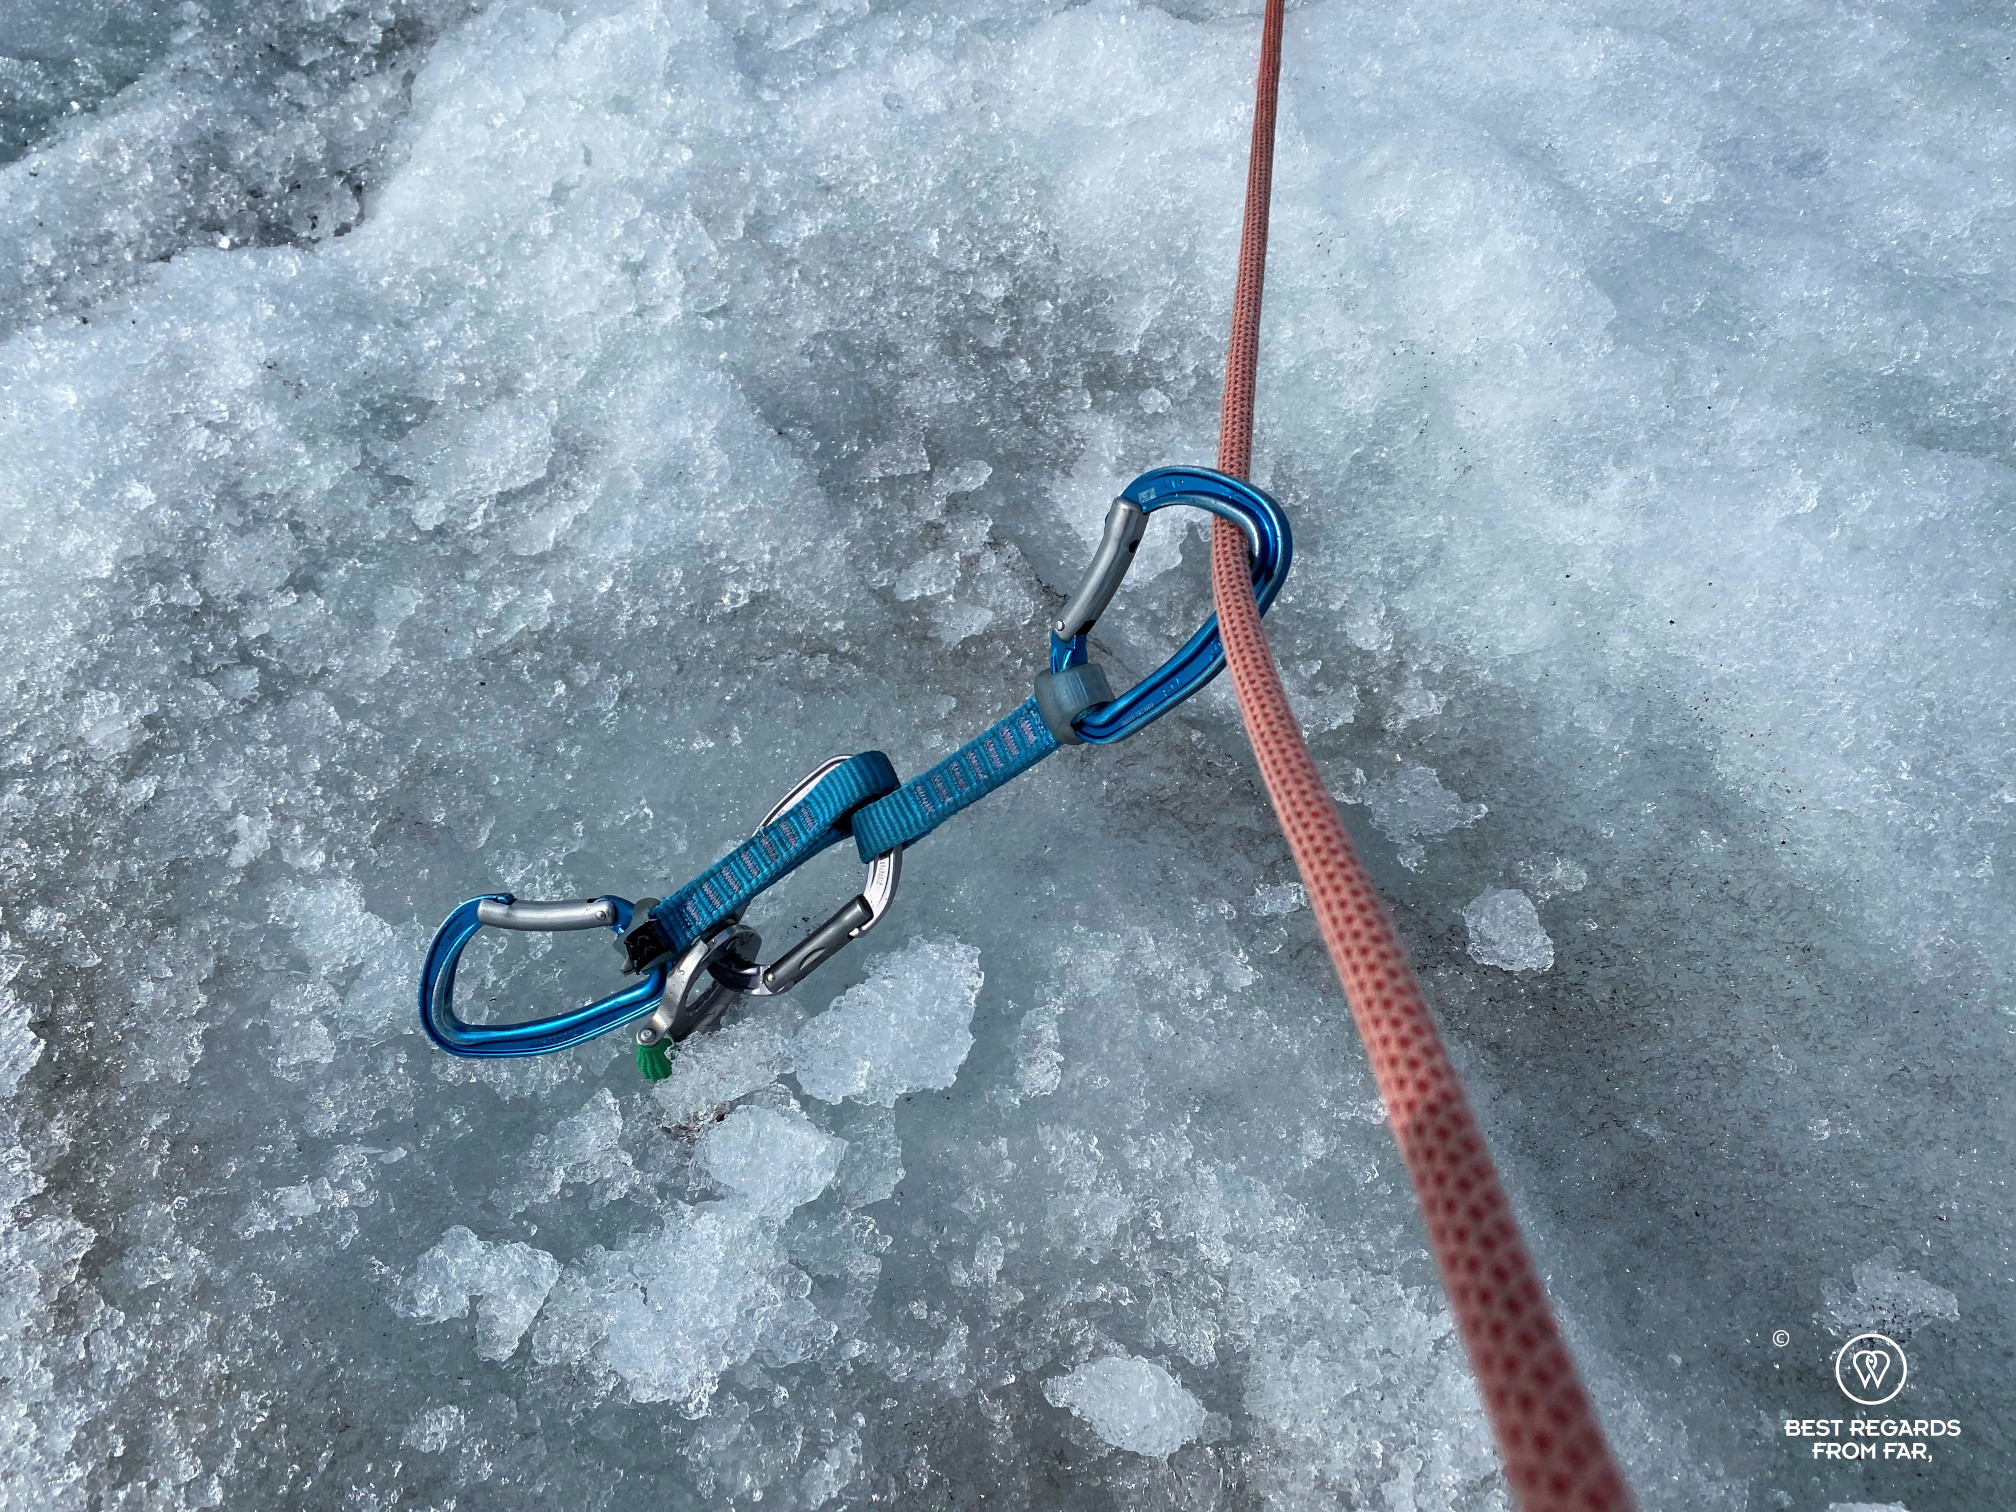 Rope secured in the glacier by an ice screw